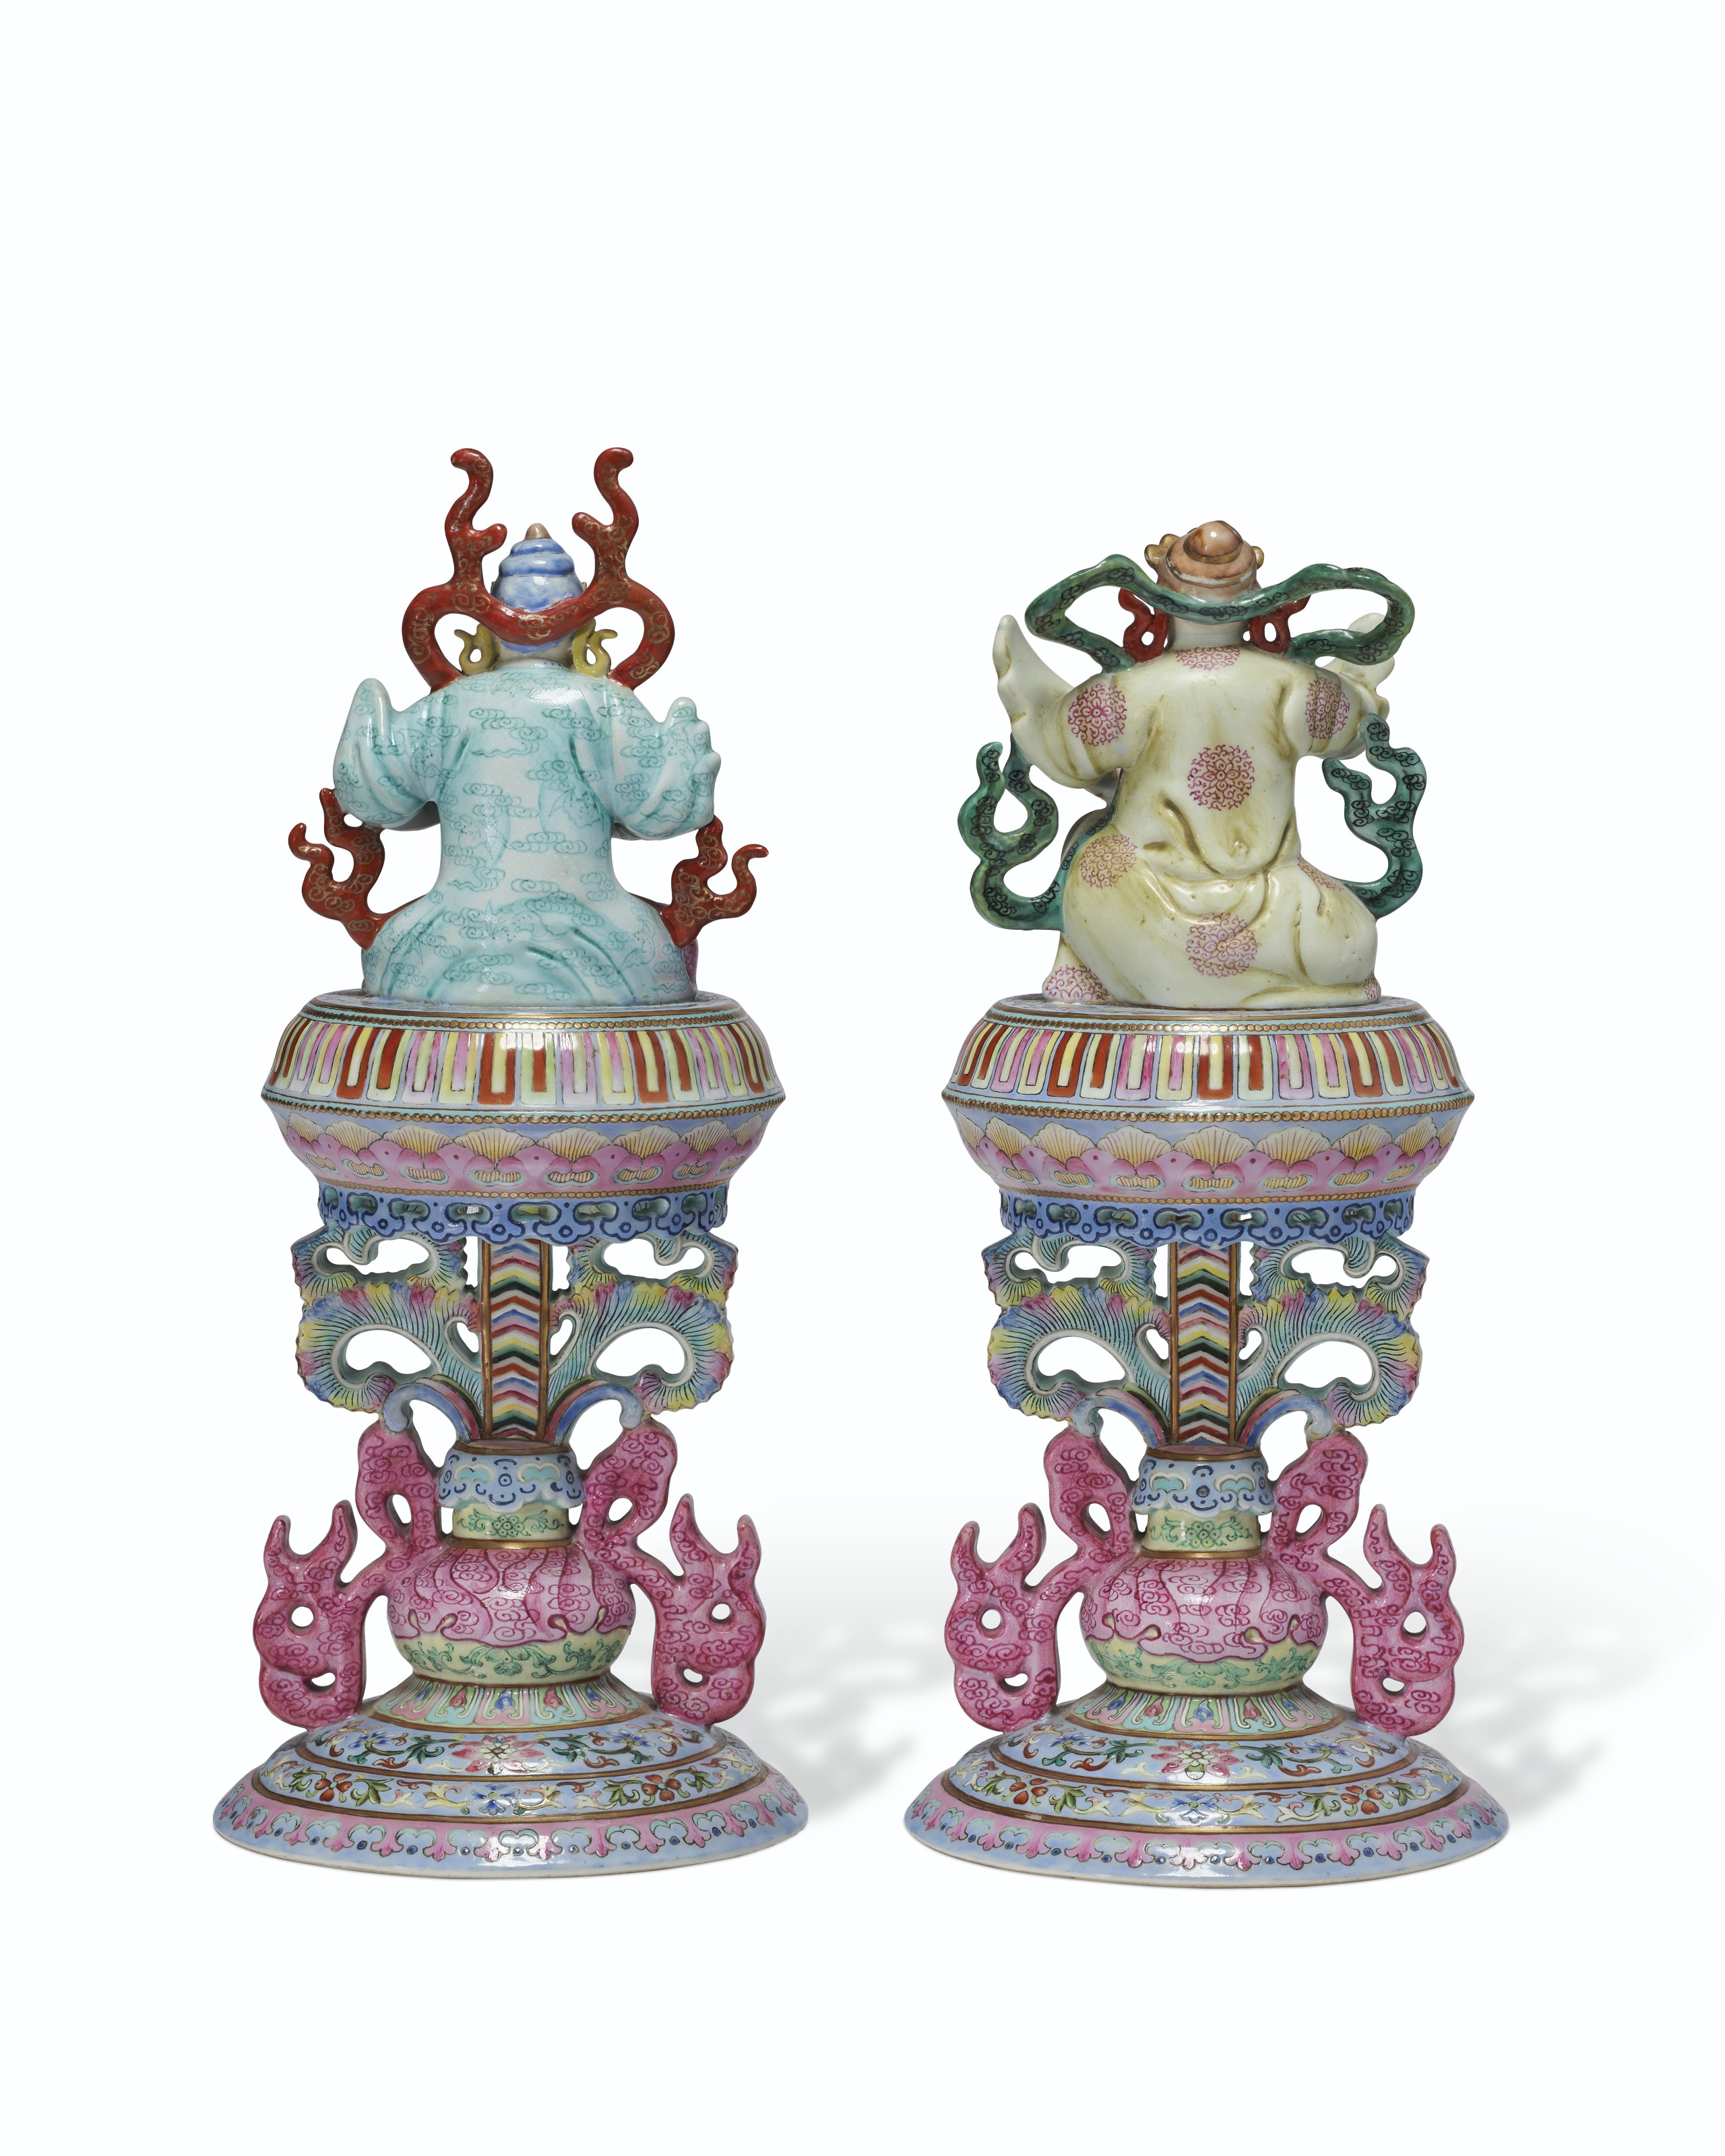 A VERY RARE PAIR OF FAMILLE ROSE ALTAR ORNAMENTS